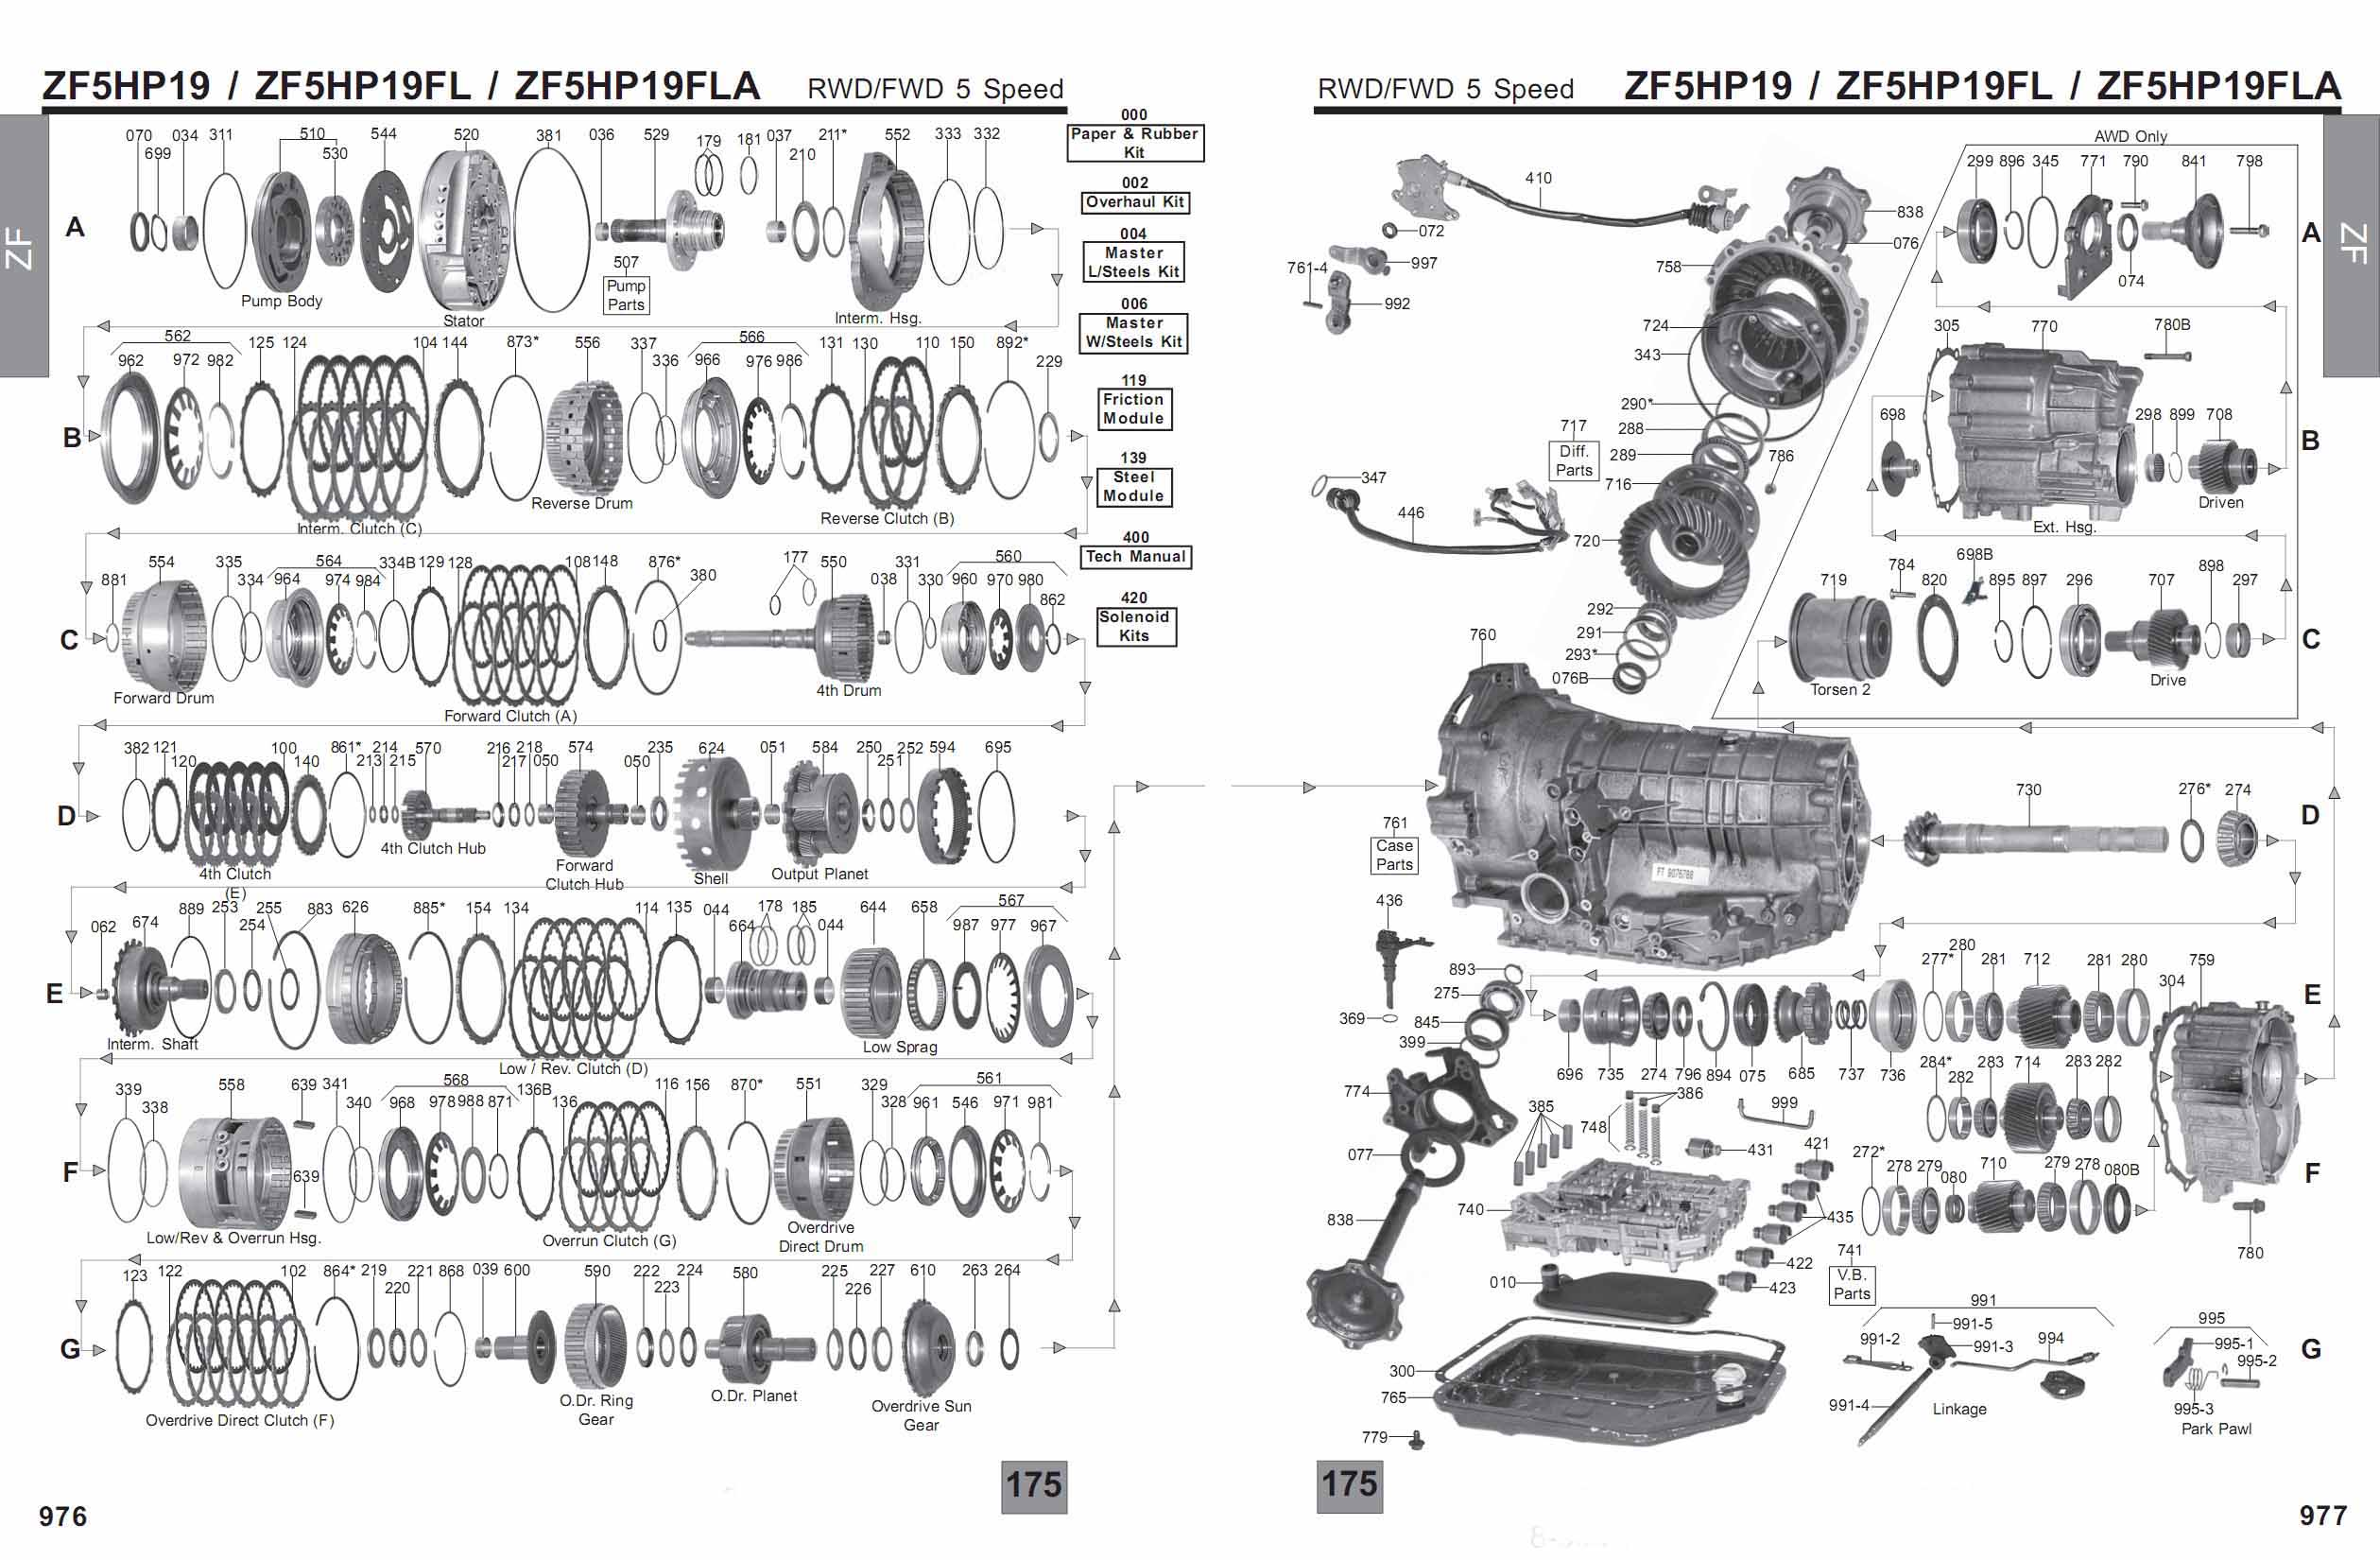 transmission repair manuals zf 5hp19 instructions for rebuild rh at manuals com 7 Speed Manual Transmission Manual Transmission Gears